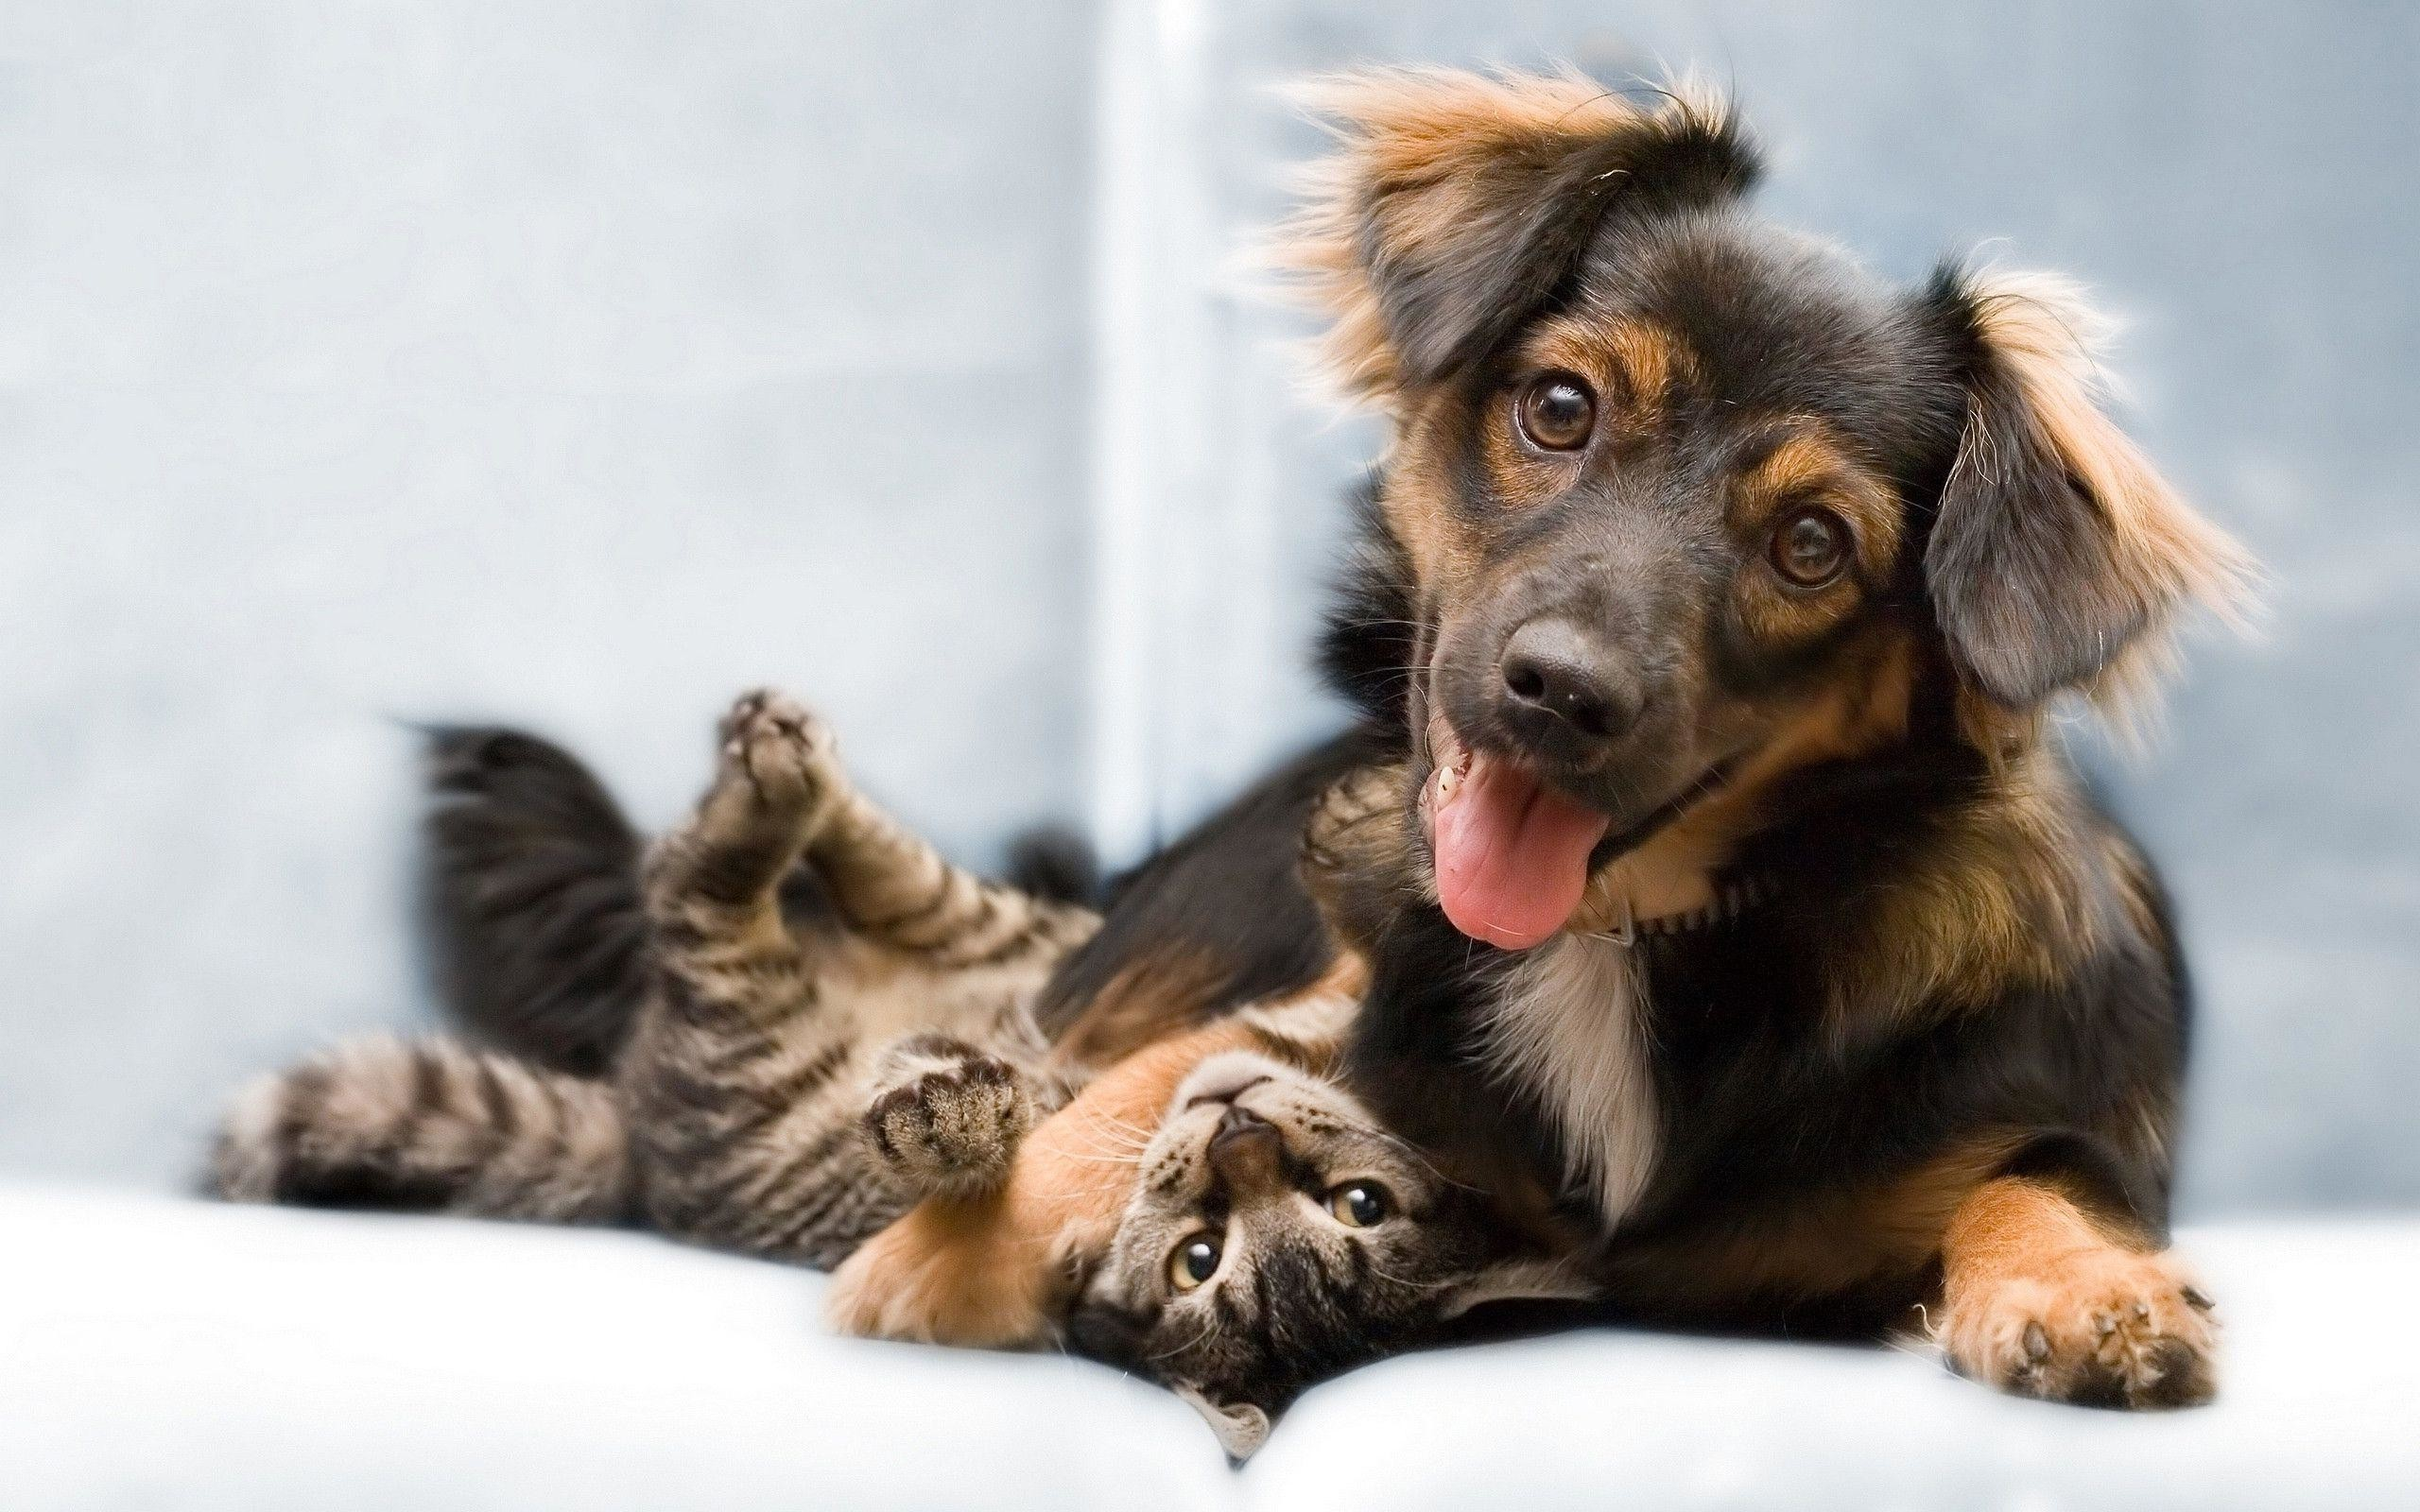 Cat And Dog Wallpaper